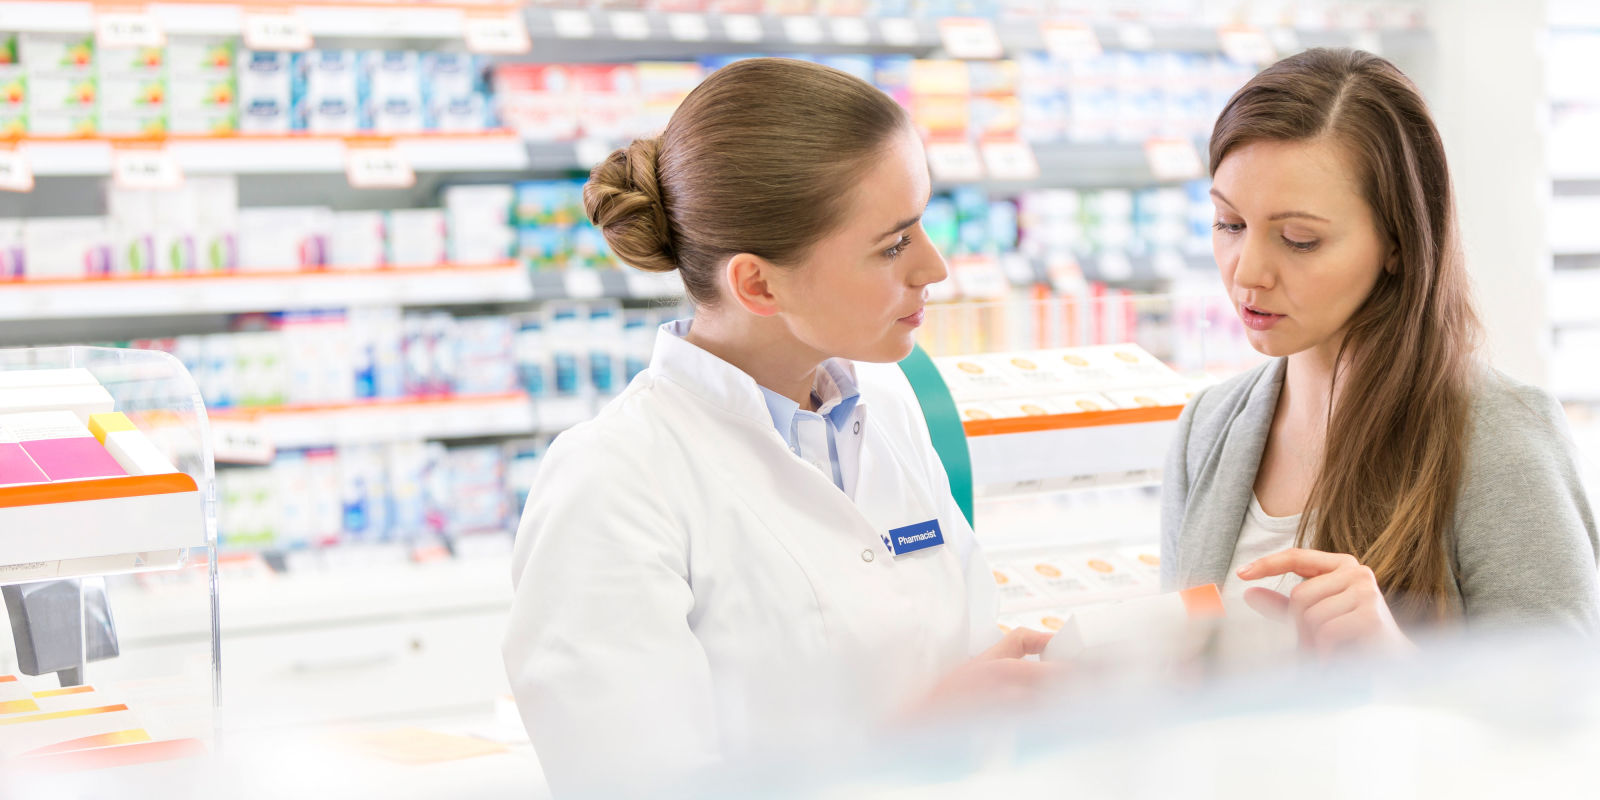 pharmacist and patient relationship